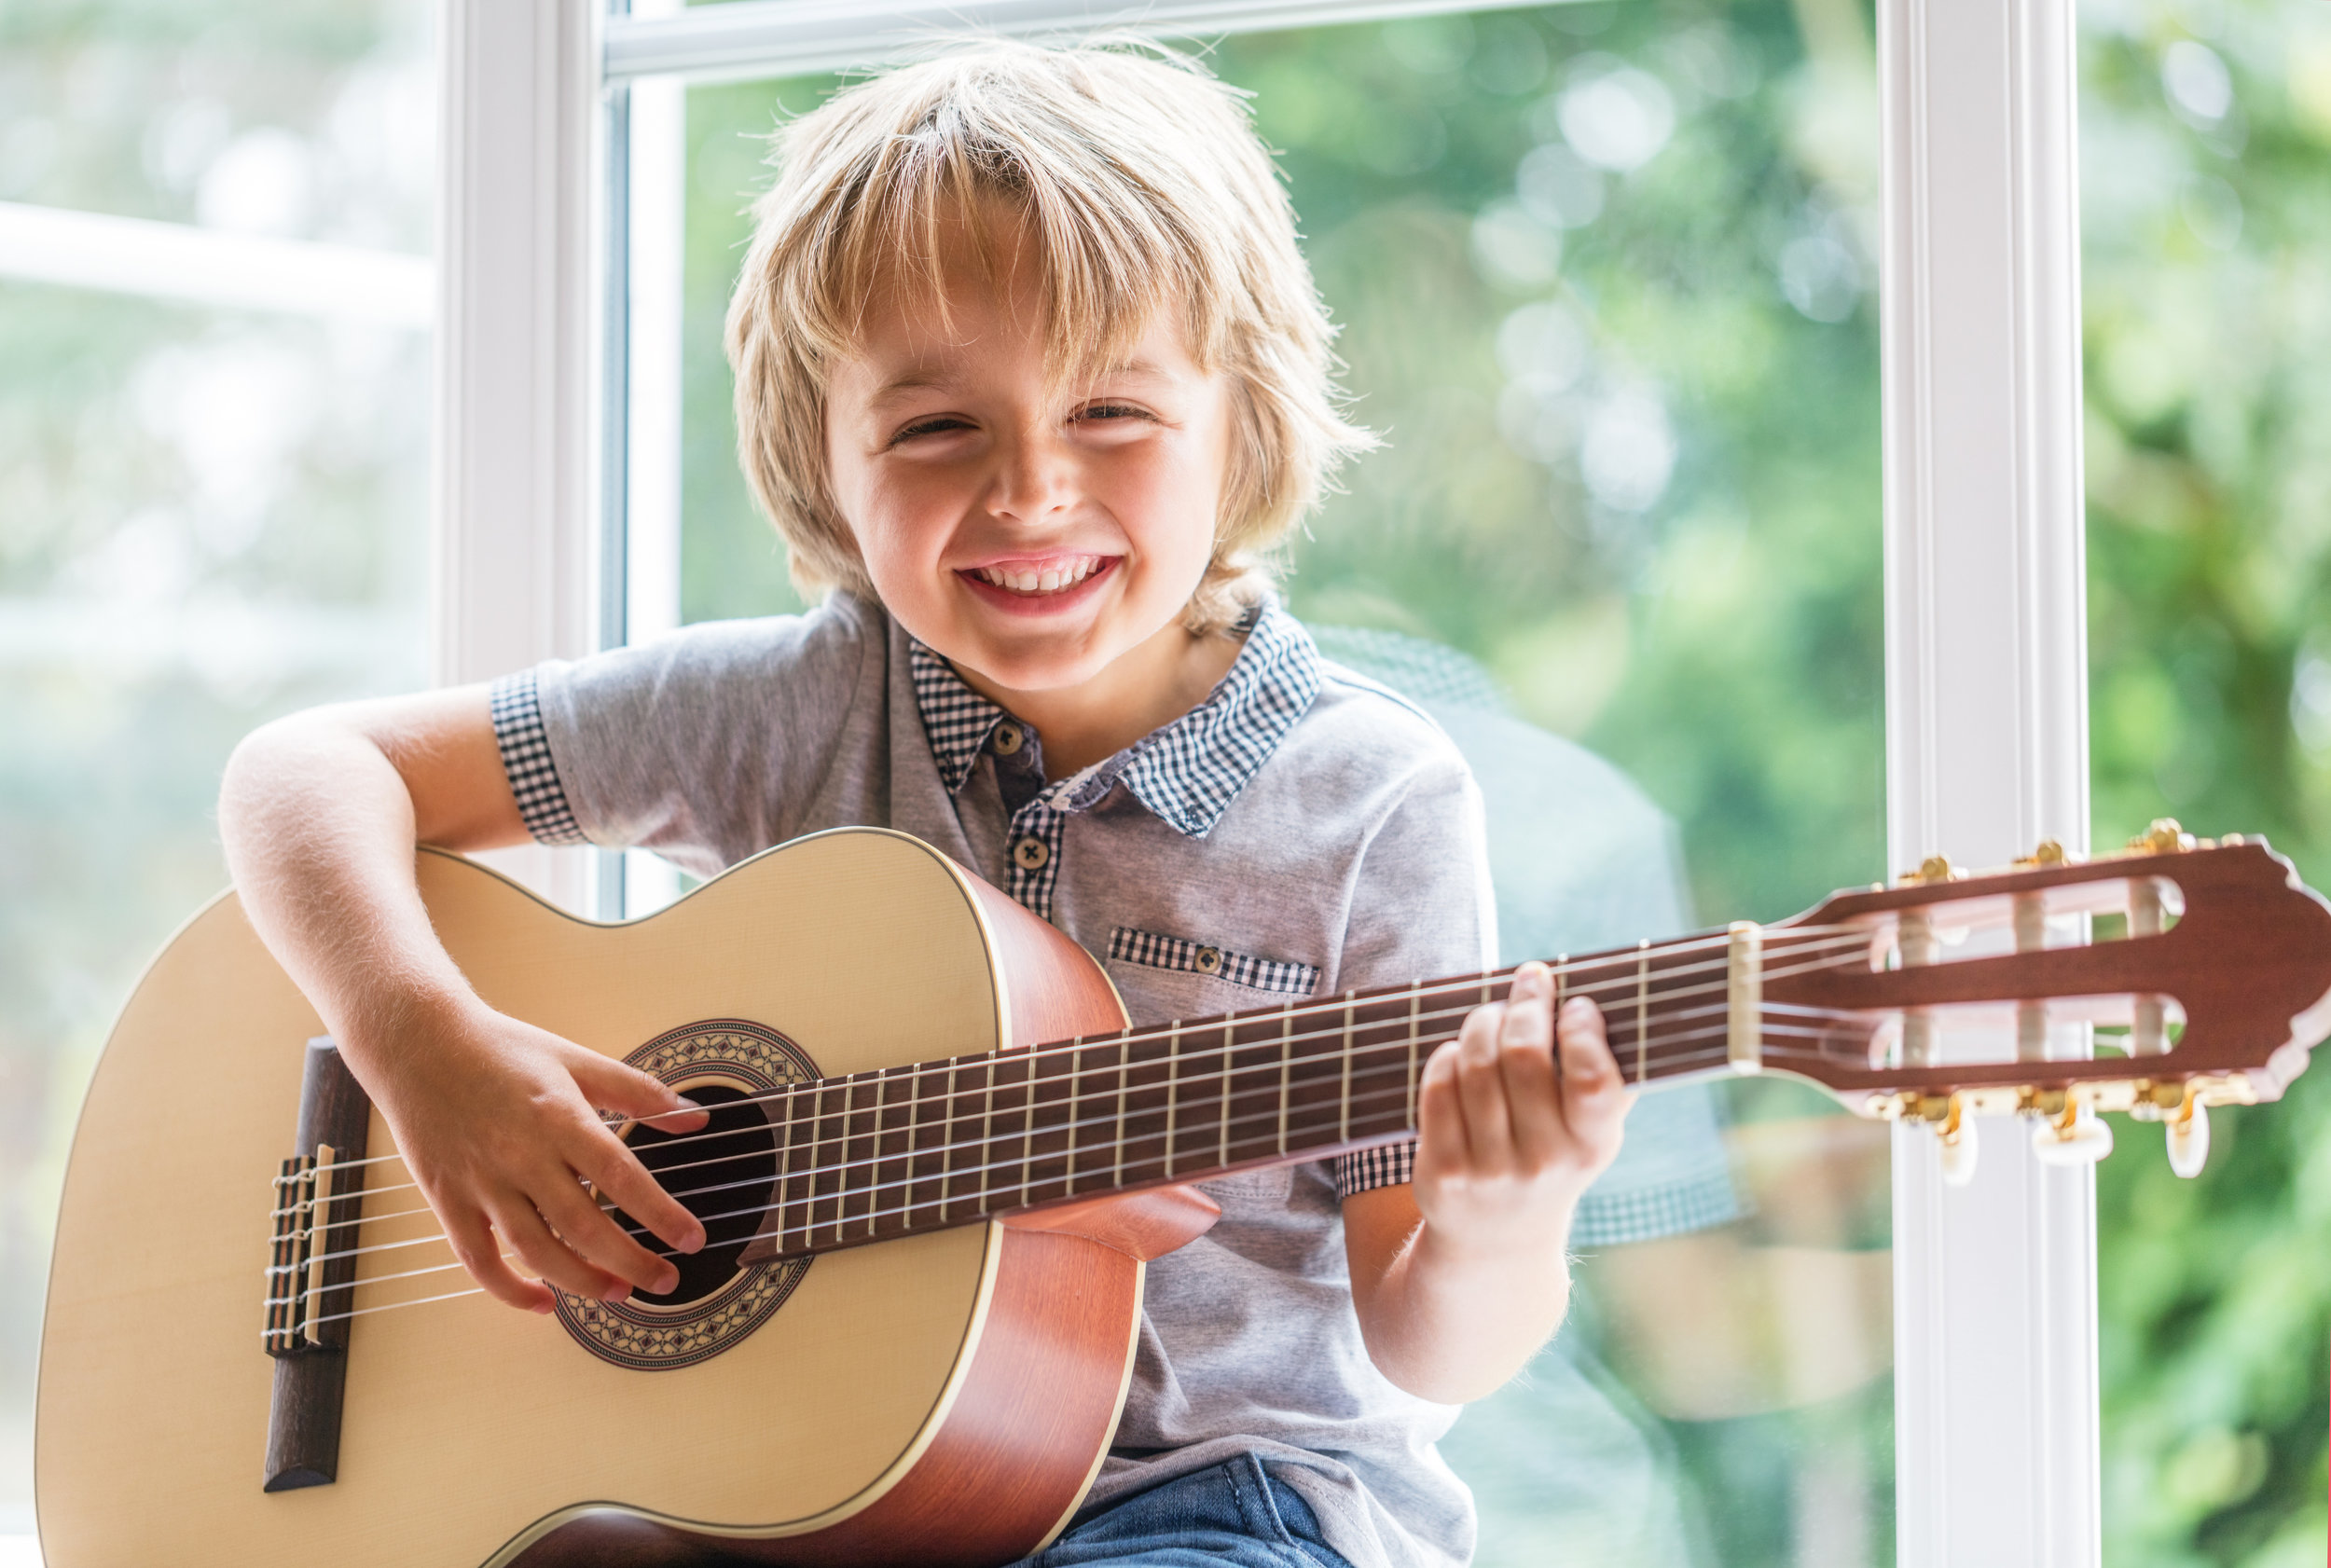 cms istock young blonde boy with guitar.jpg